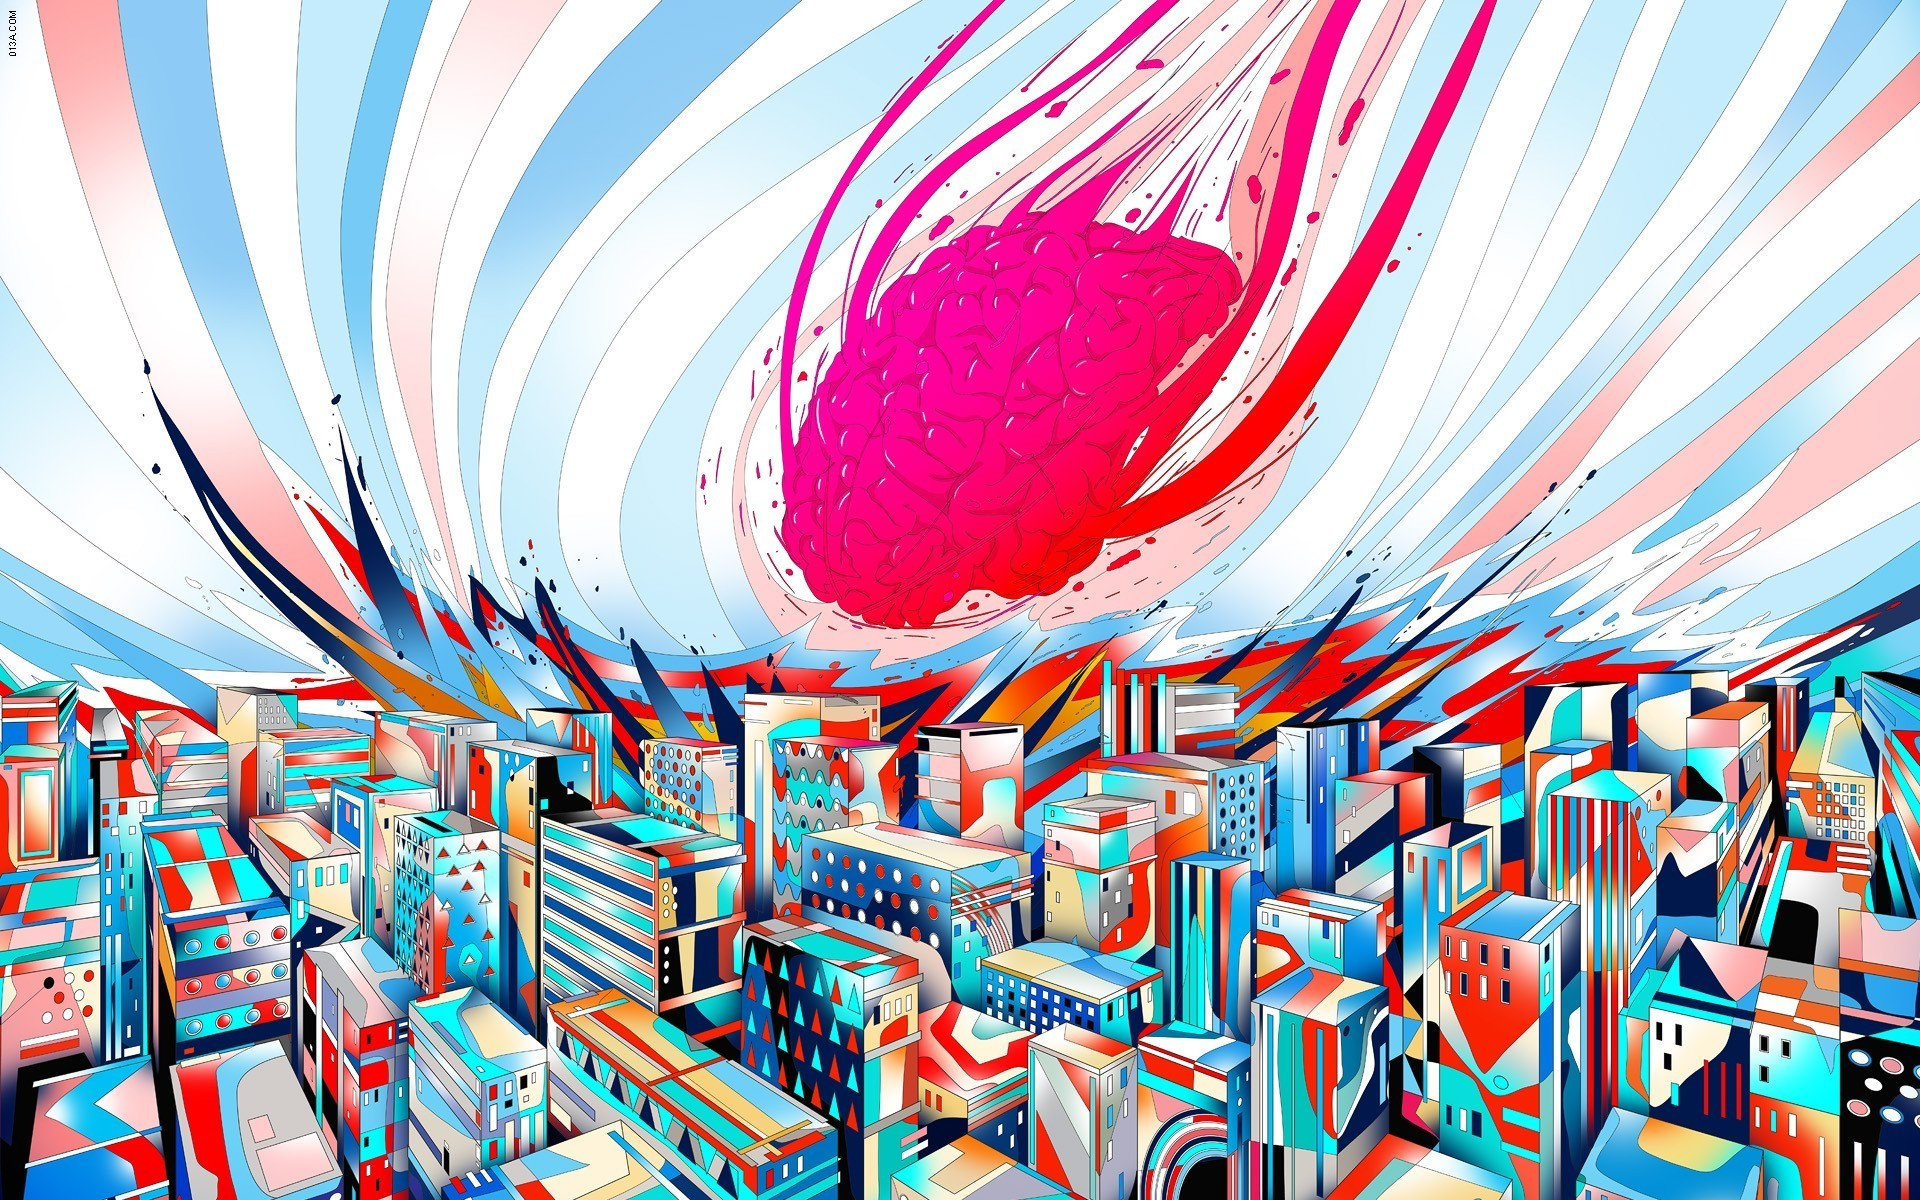 brain, Abstract, Artwork, Drawn, City, Colorful